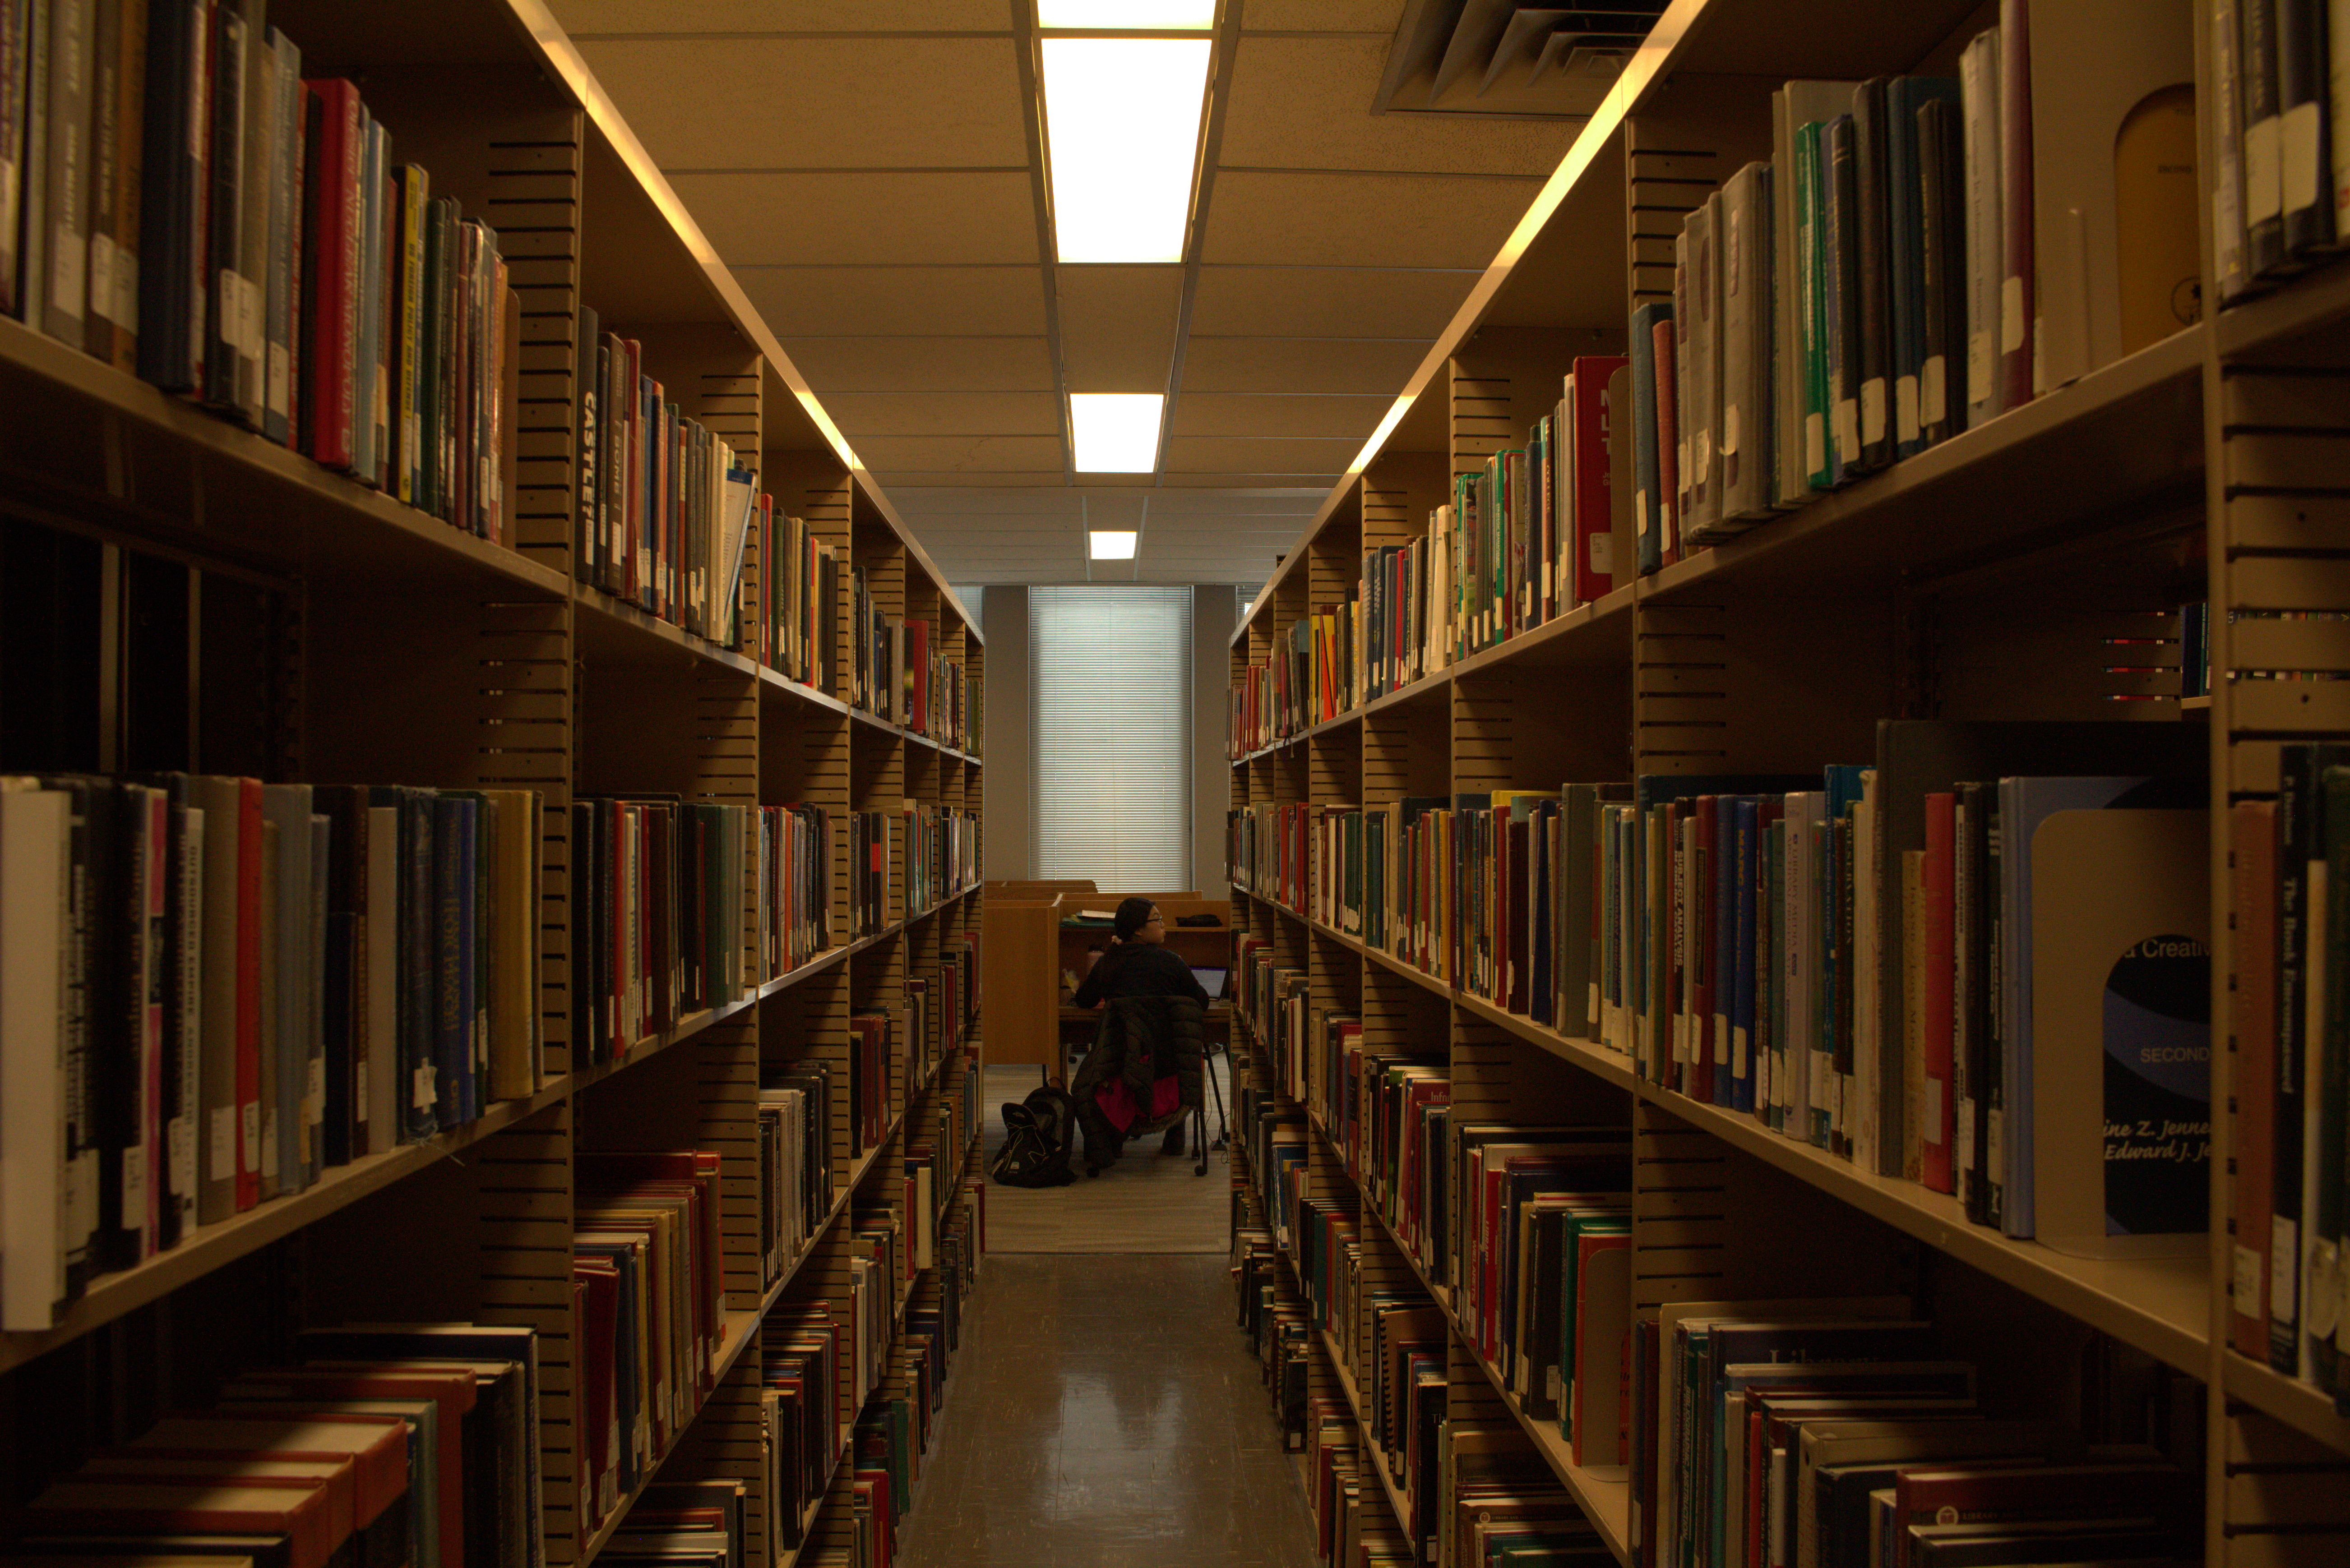 A student studies on the third floor of Hunt Library. The quiet study areas on the floor surround several stacks of books, which take up about half of the floor.